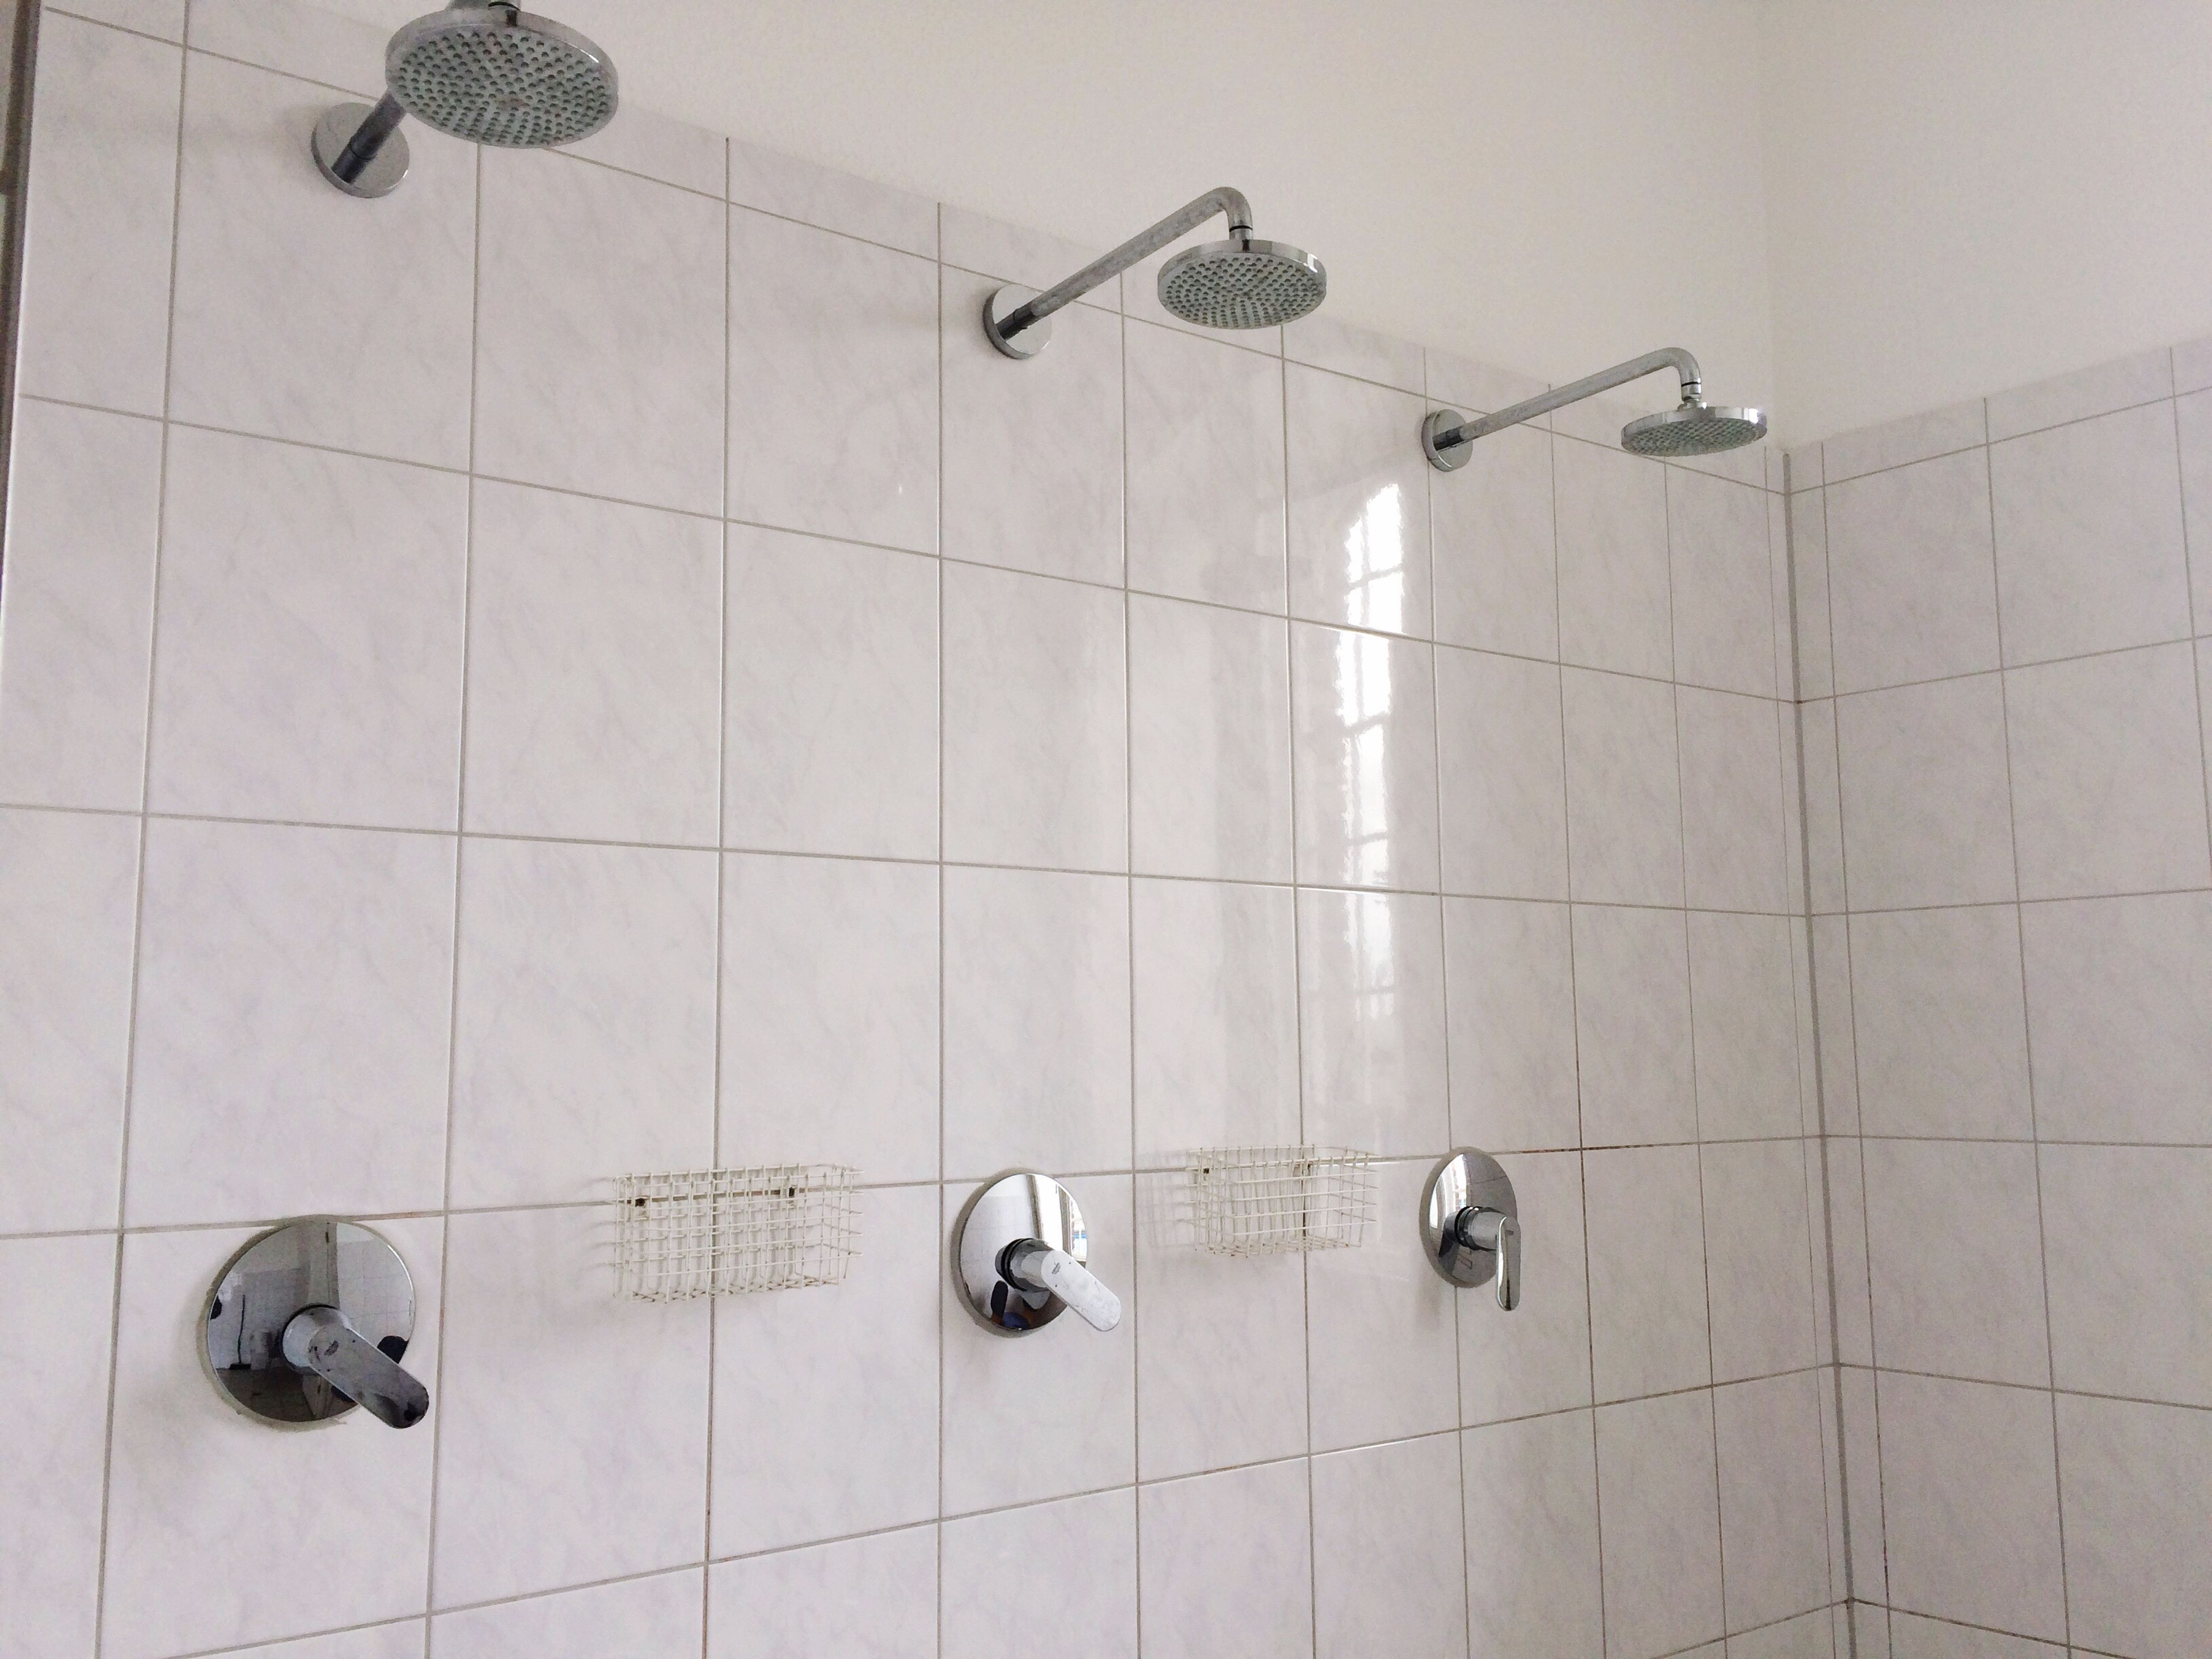 shower, shower head, bathroom, tile, domestic bathroom, hygiene, no people, indoors, domestic room, faucet, day